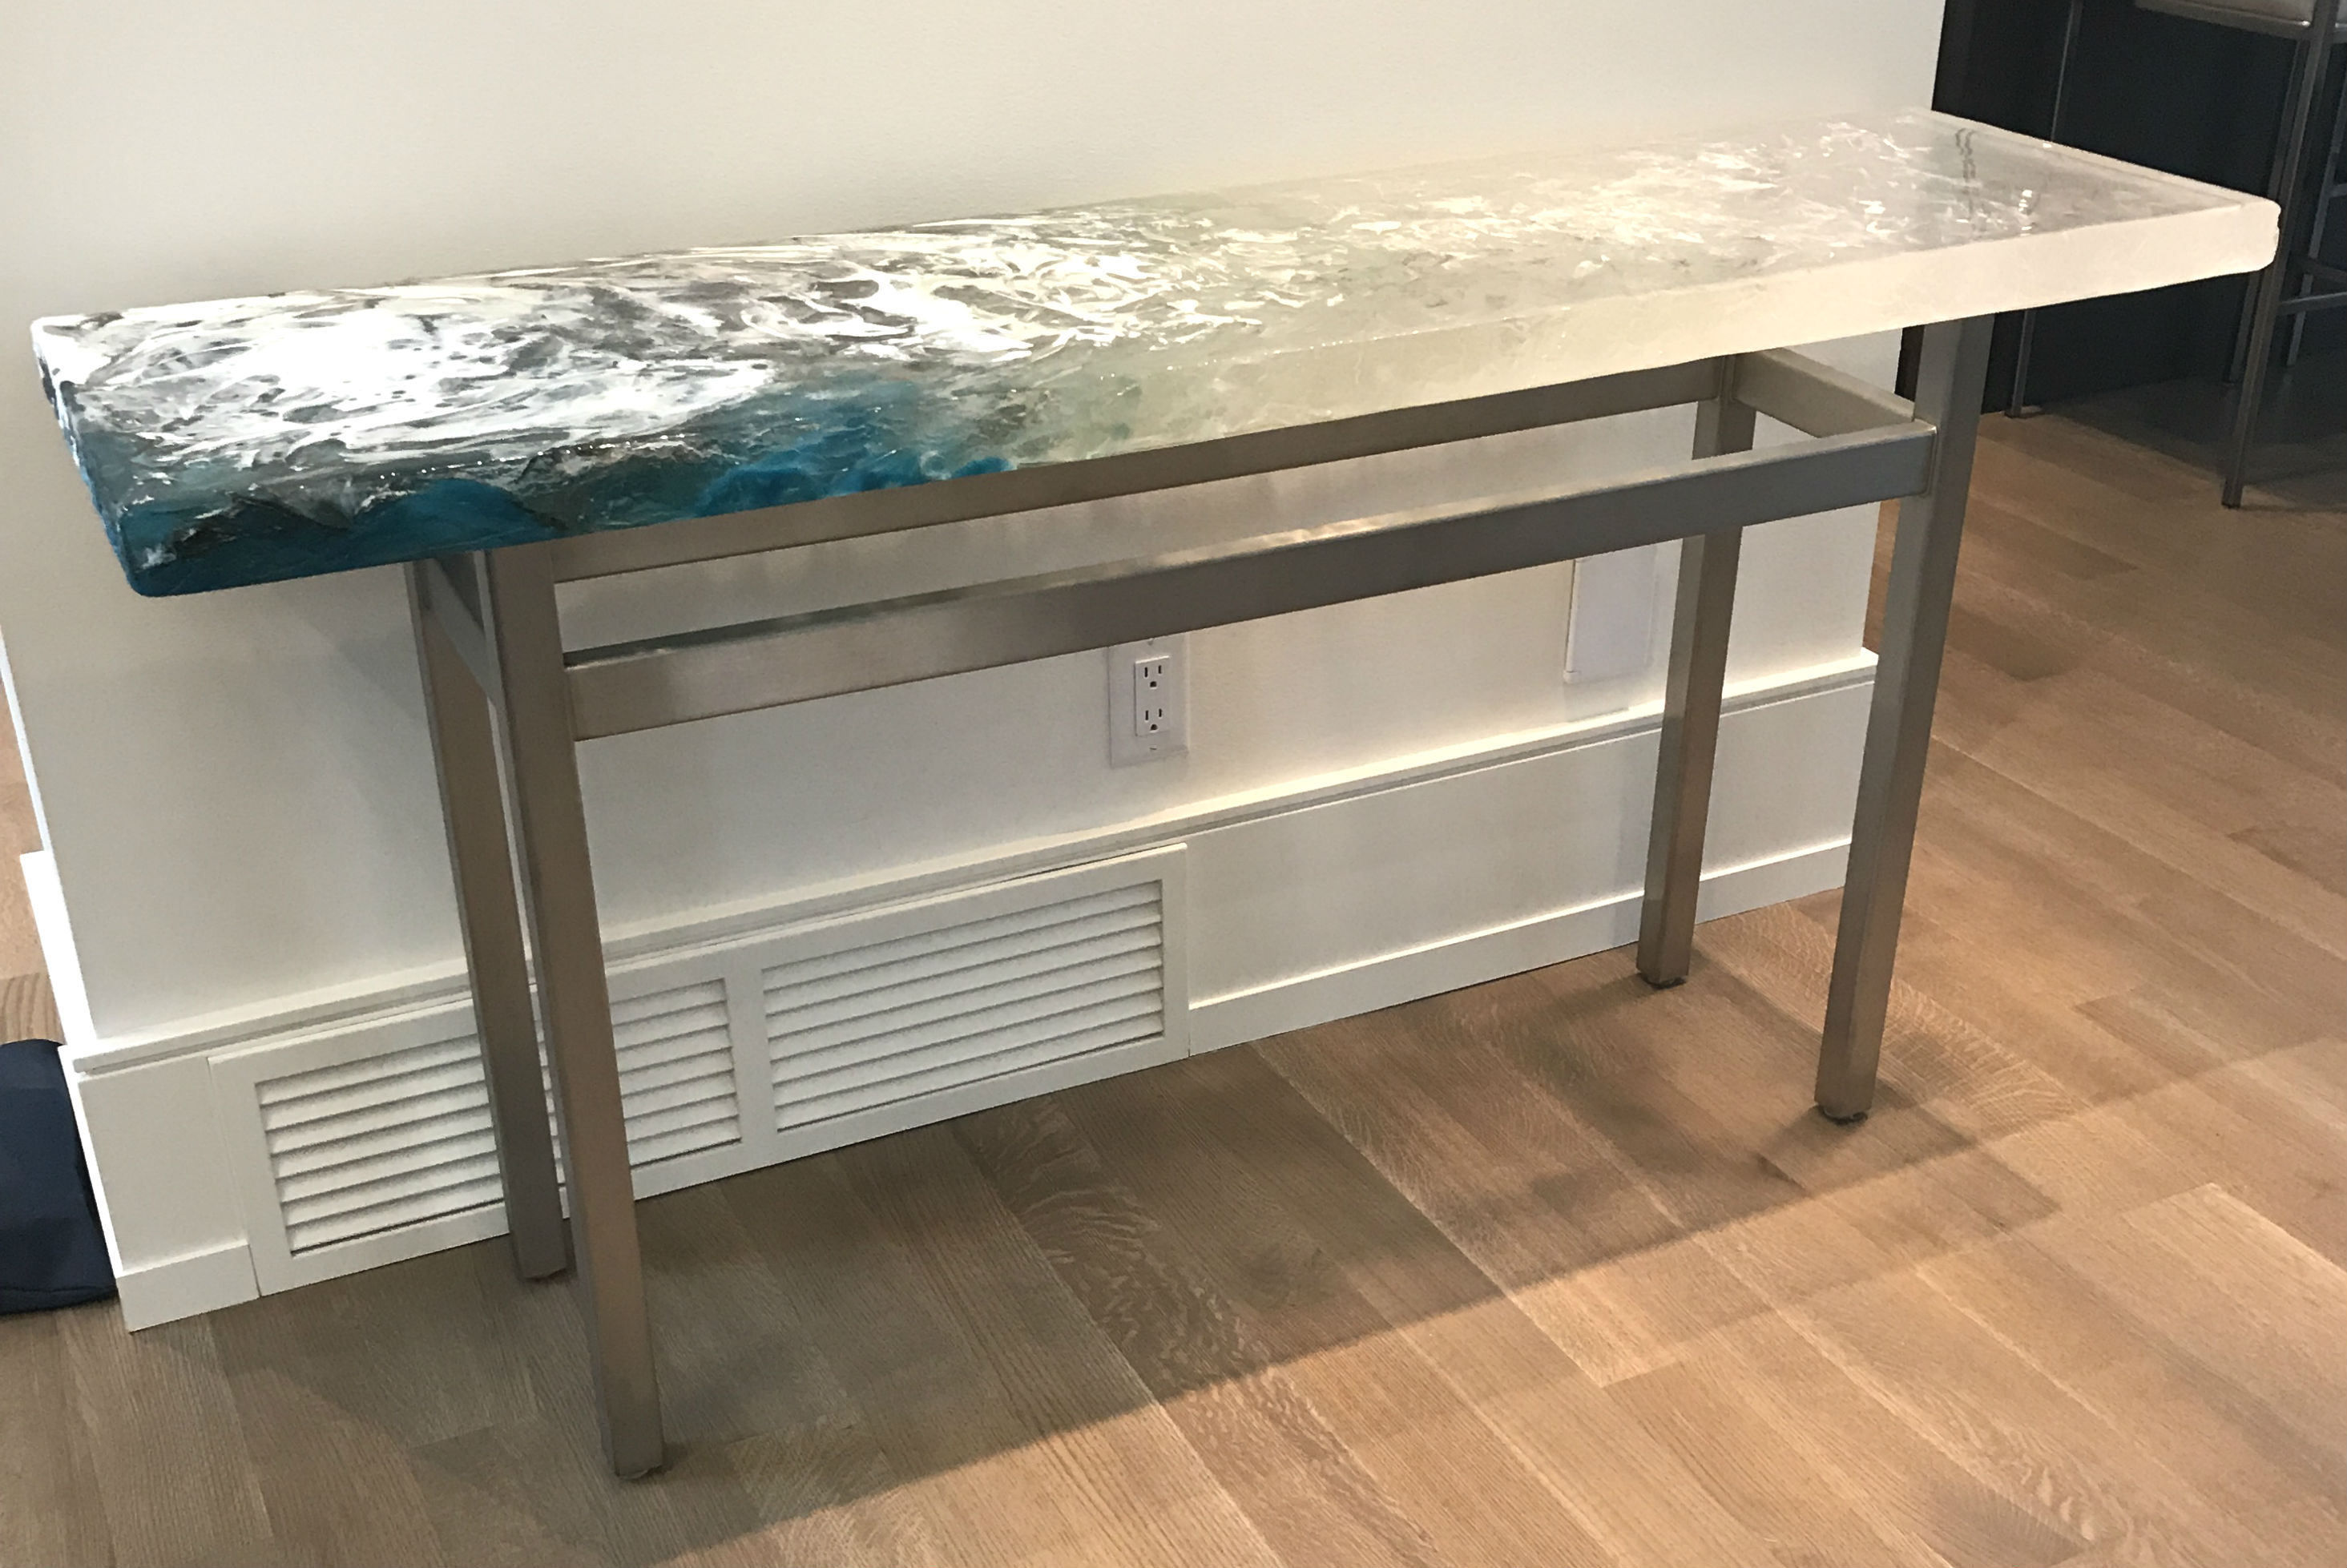 Custom cast glass console table by Heather Cuell